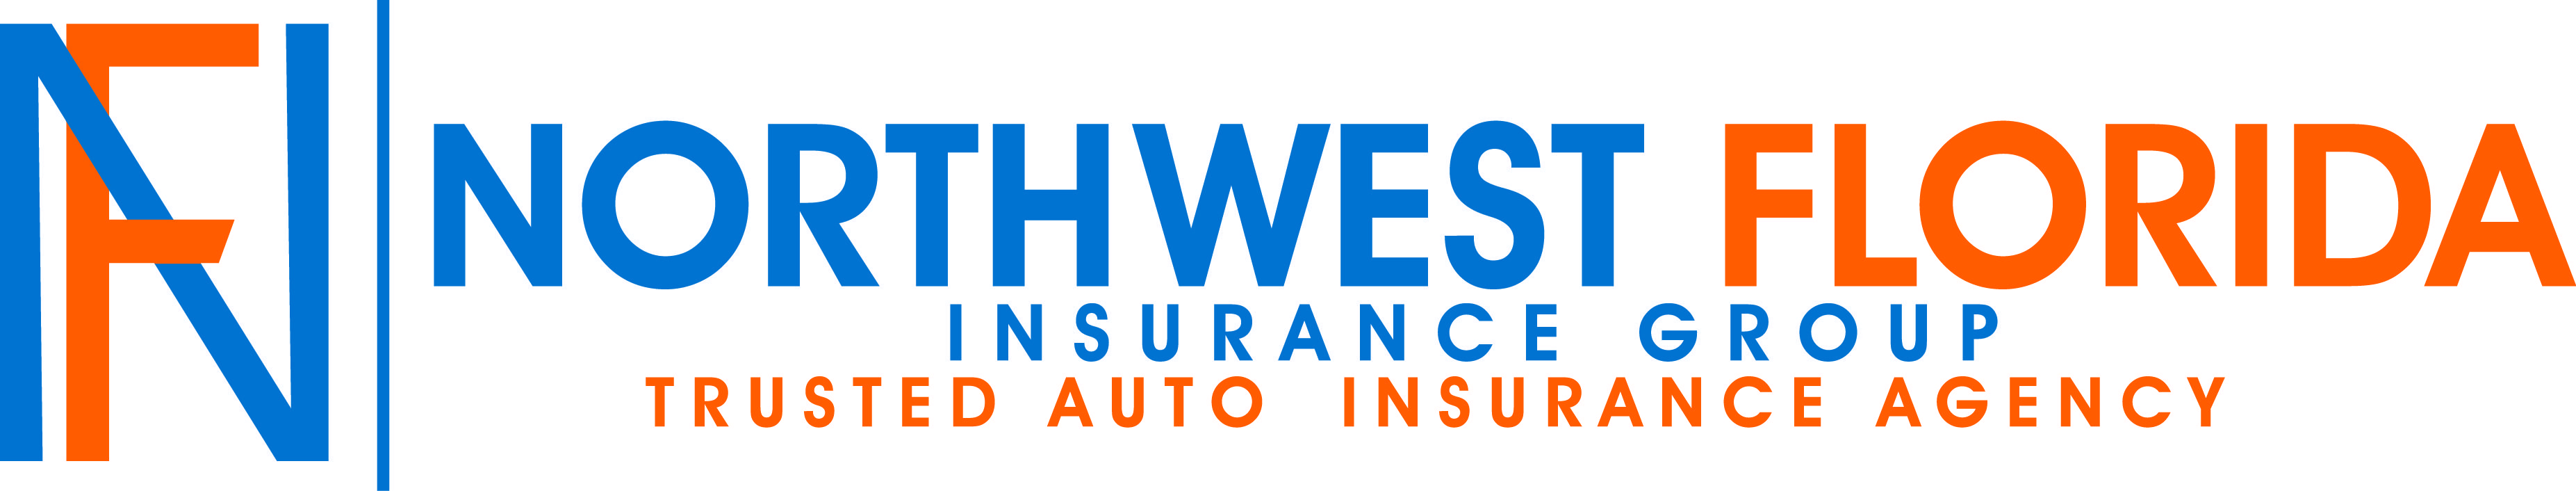 Official Logo for Northwest Florida Insurance Group